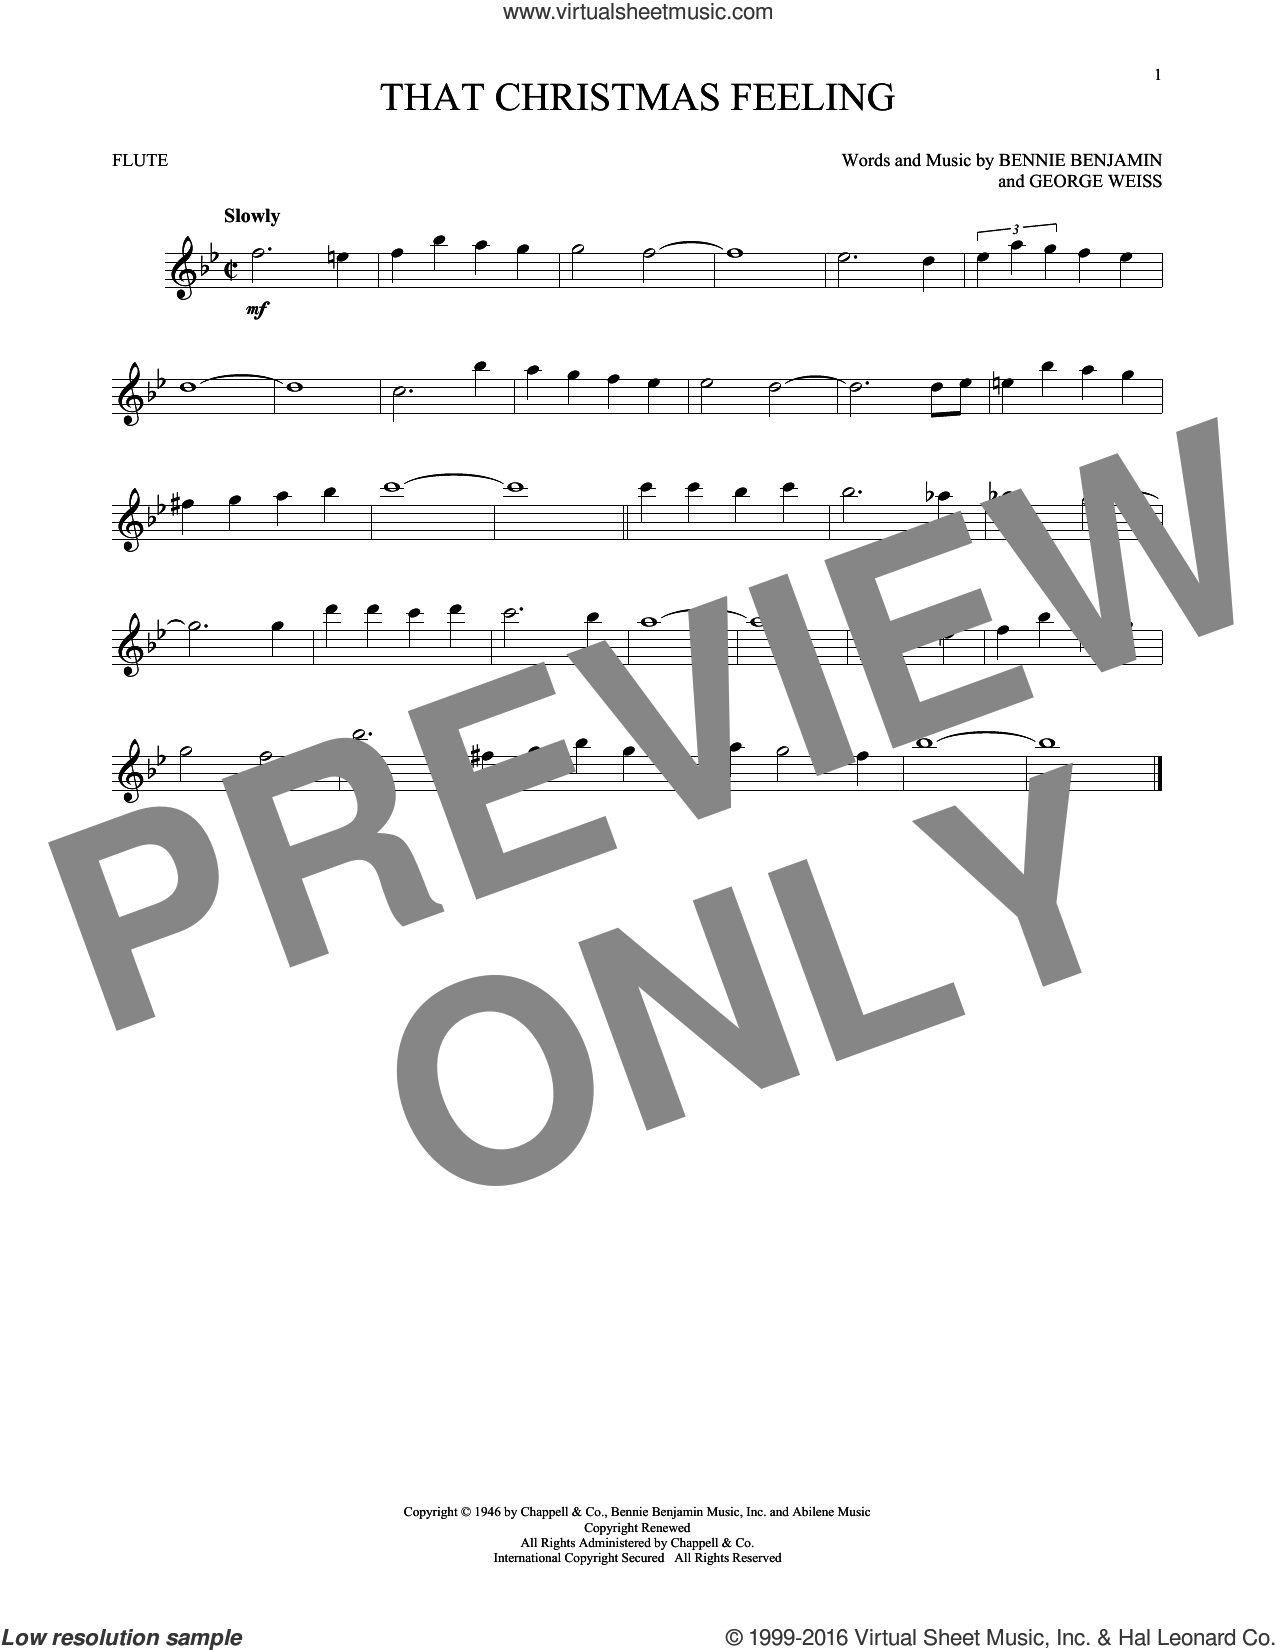 That Christmas Feeling sheet music for flute solo by George David Weiss, Bennie Benjamin and Bennie Benjamin & George Weiss, intermediate skill level